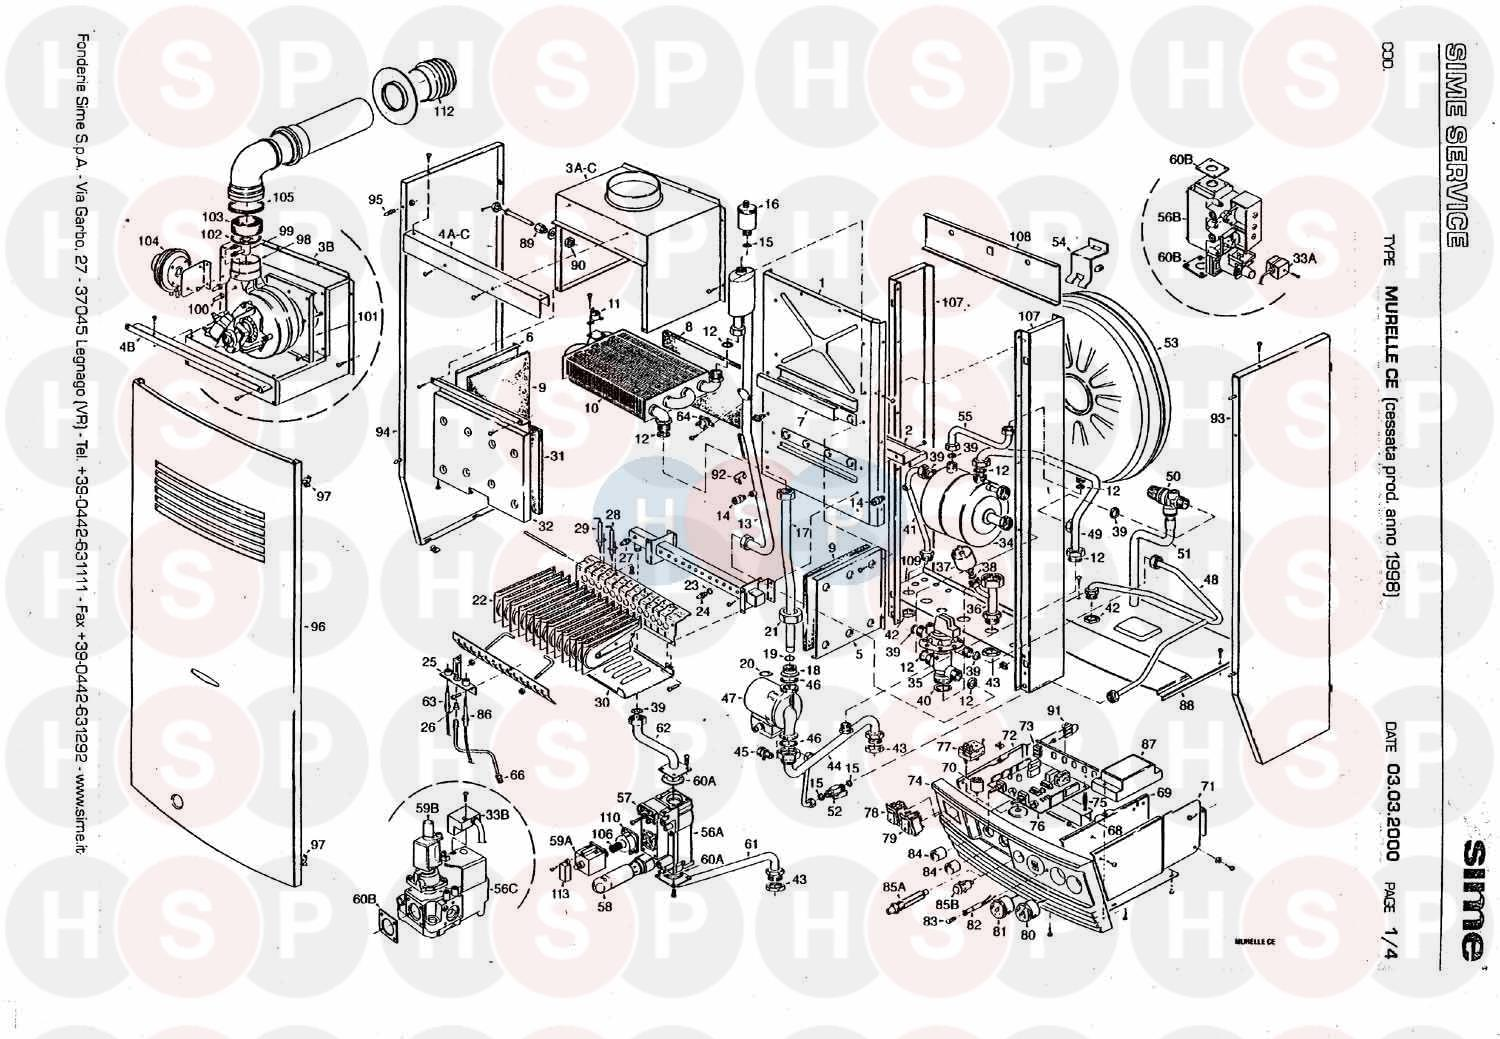 Sime murelle ce 20 exploded view diagram heating spare parts click the diagram to open it on a new page swarovskicordoba Choice Image